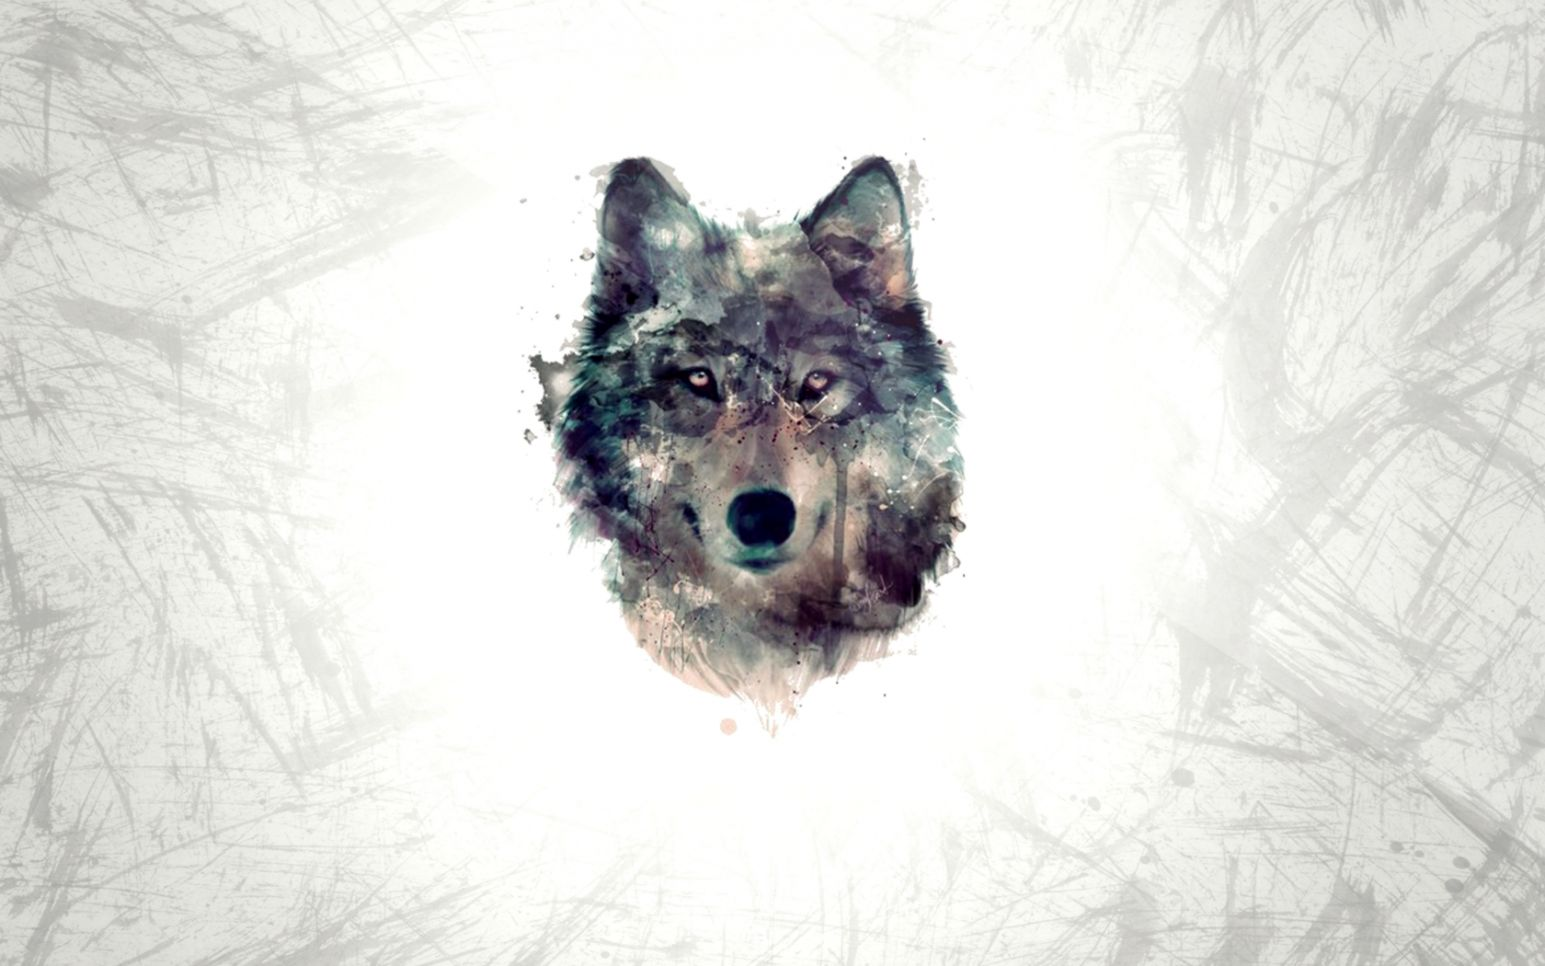 Wolf Minimalism Hd Wallpaper | Best Wallpapers HD Gallery